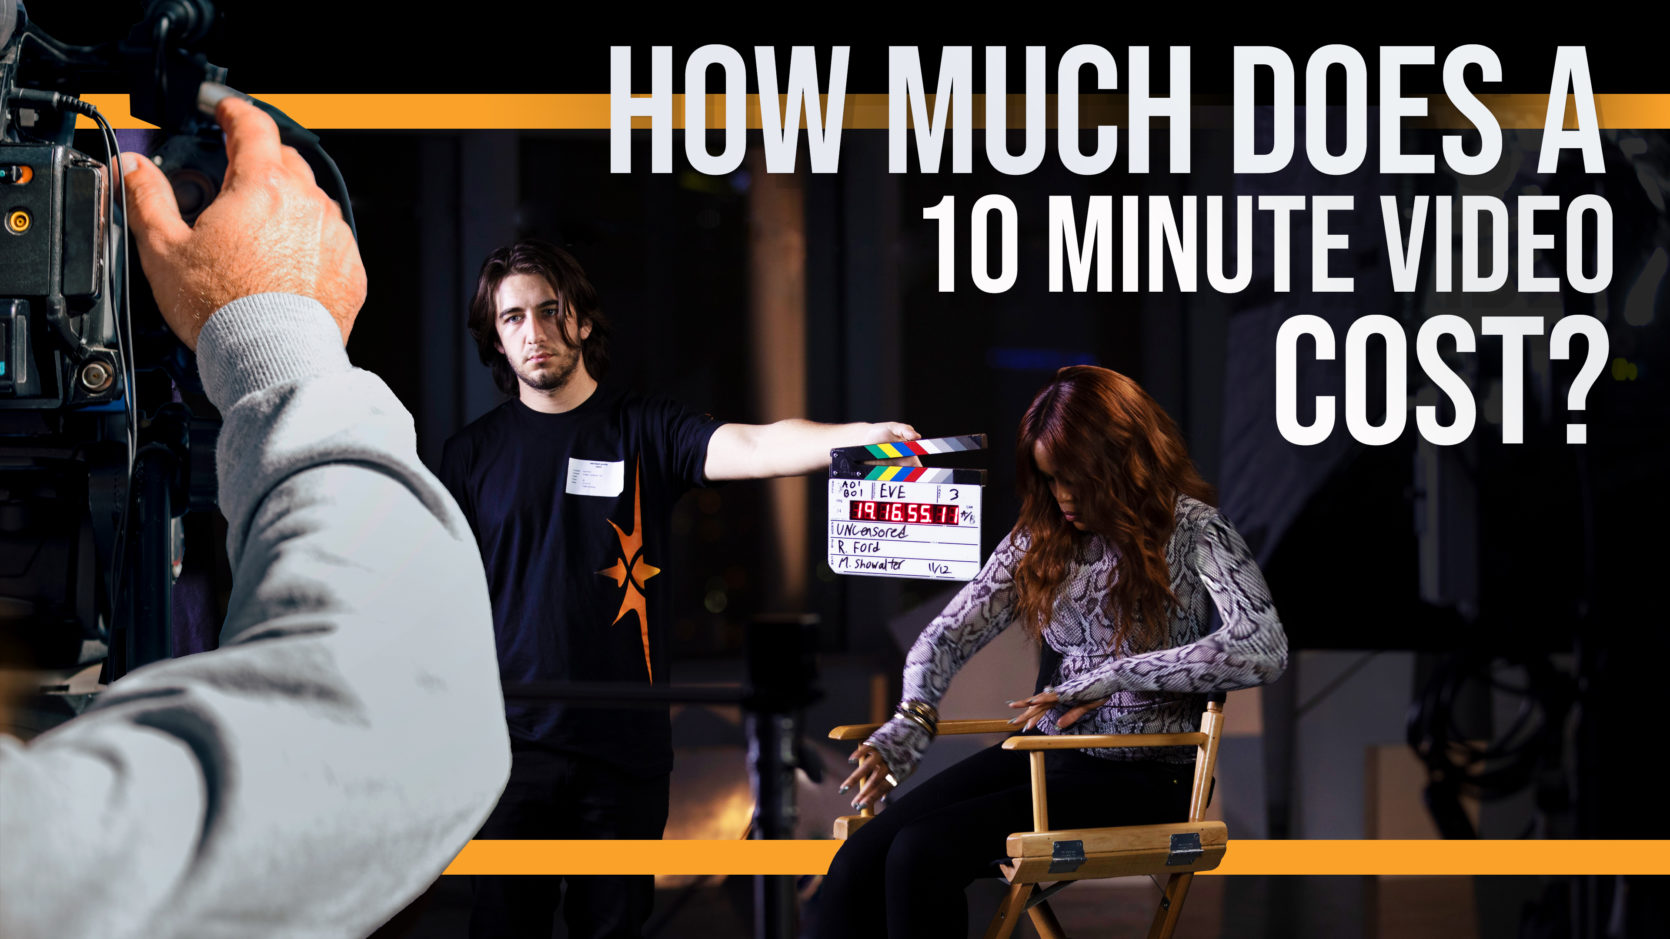 How Much Does 10 Minute Video Cost